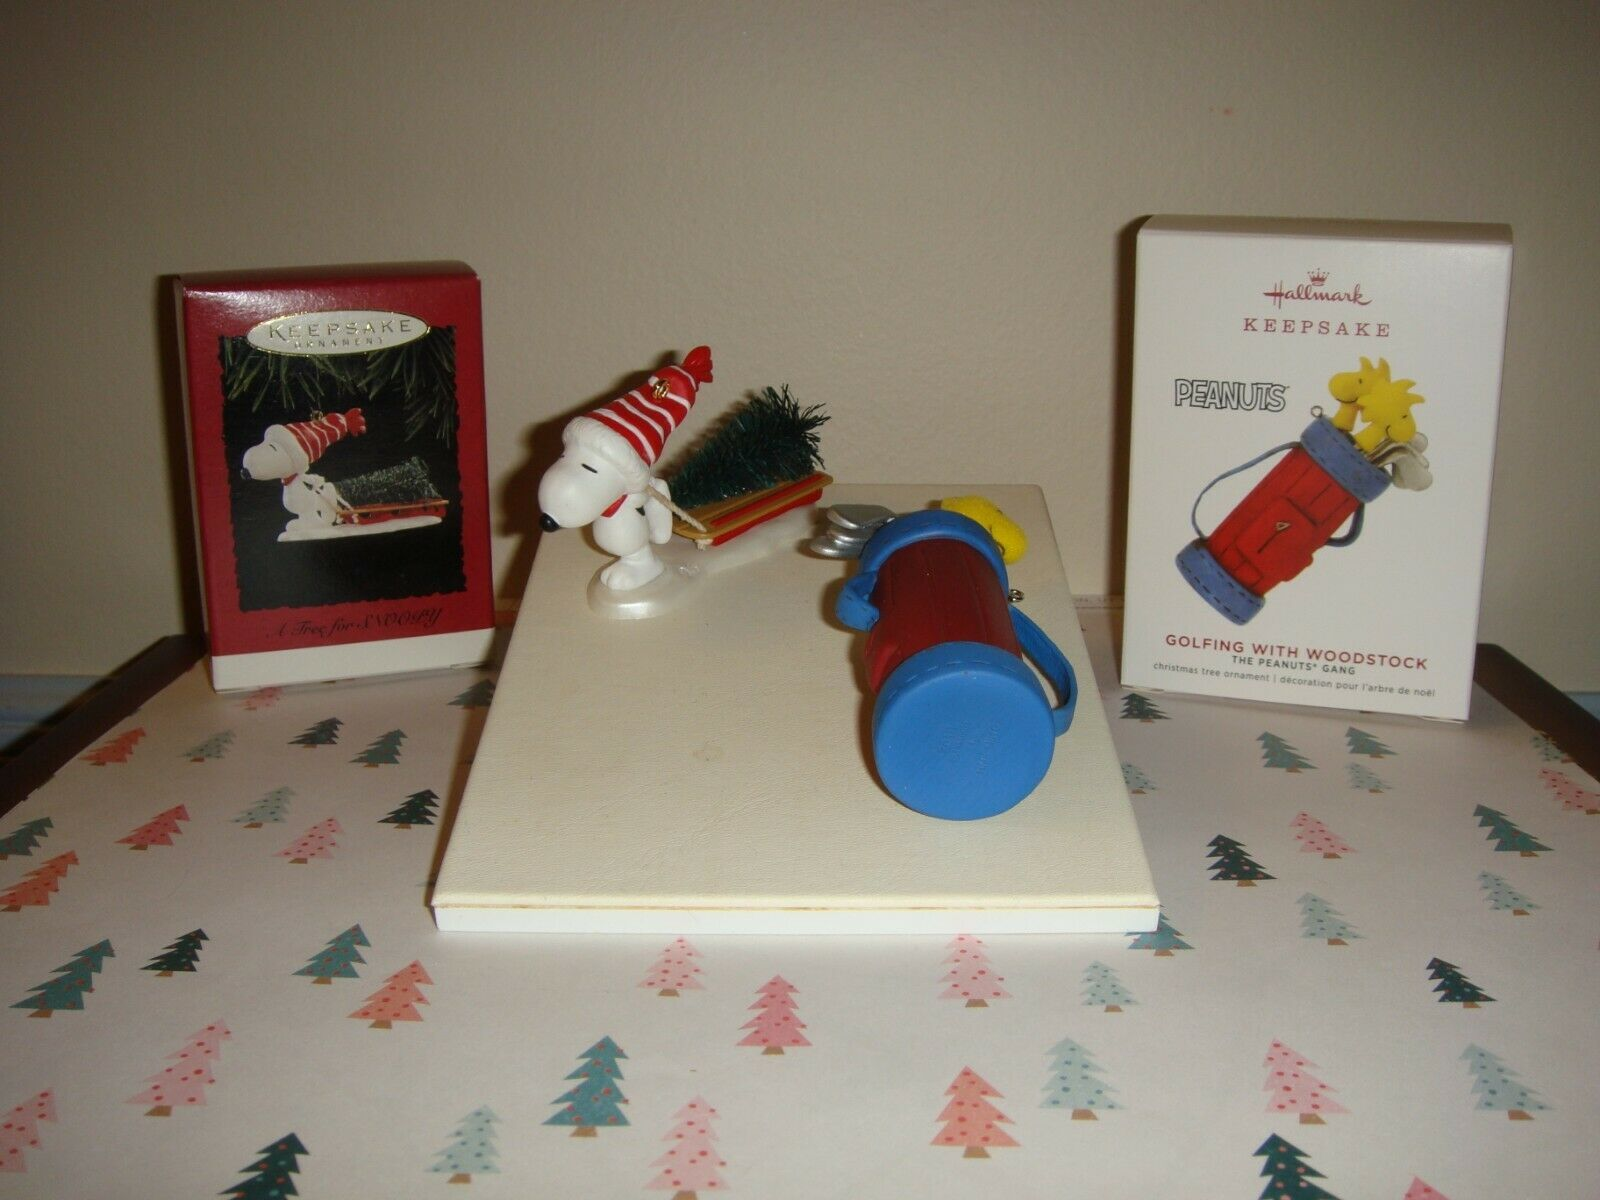 Hallmark 2019 Limited Ed Golfing With Woodstock & 96 A Tree For Snoopy Ornaments